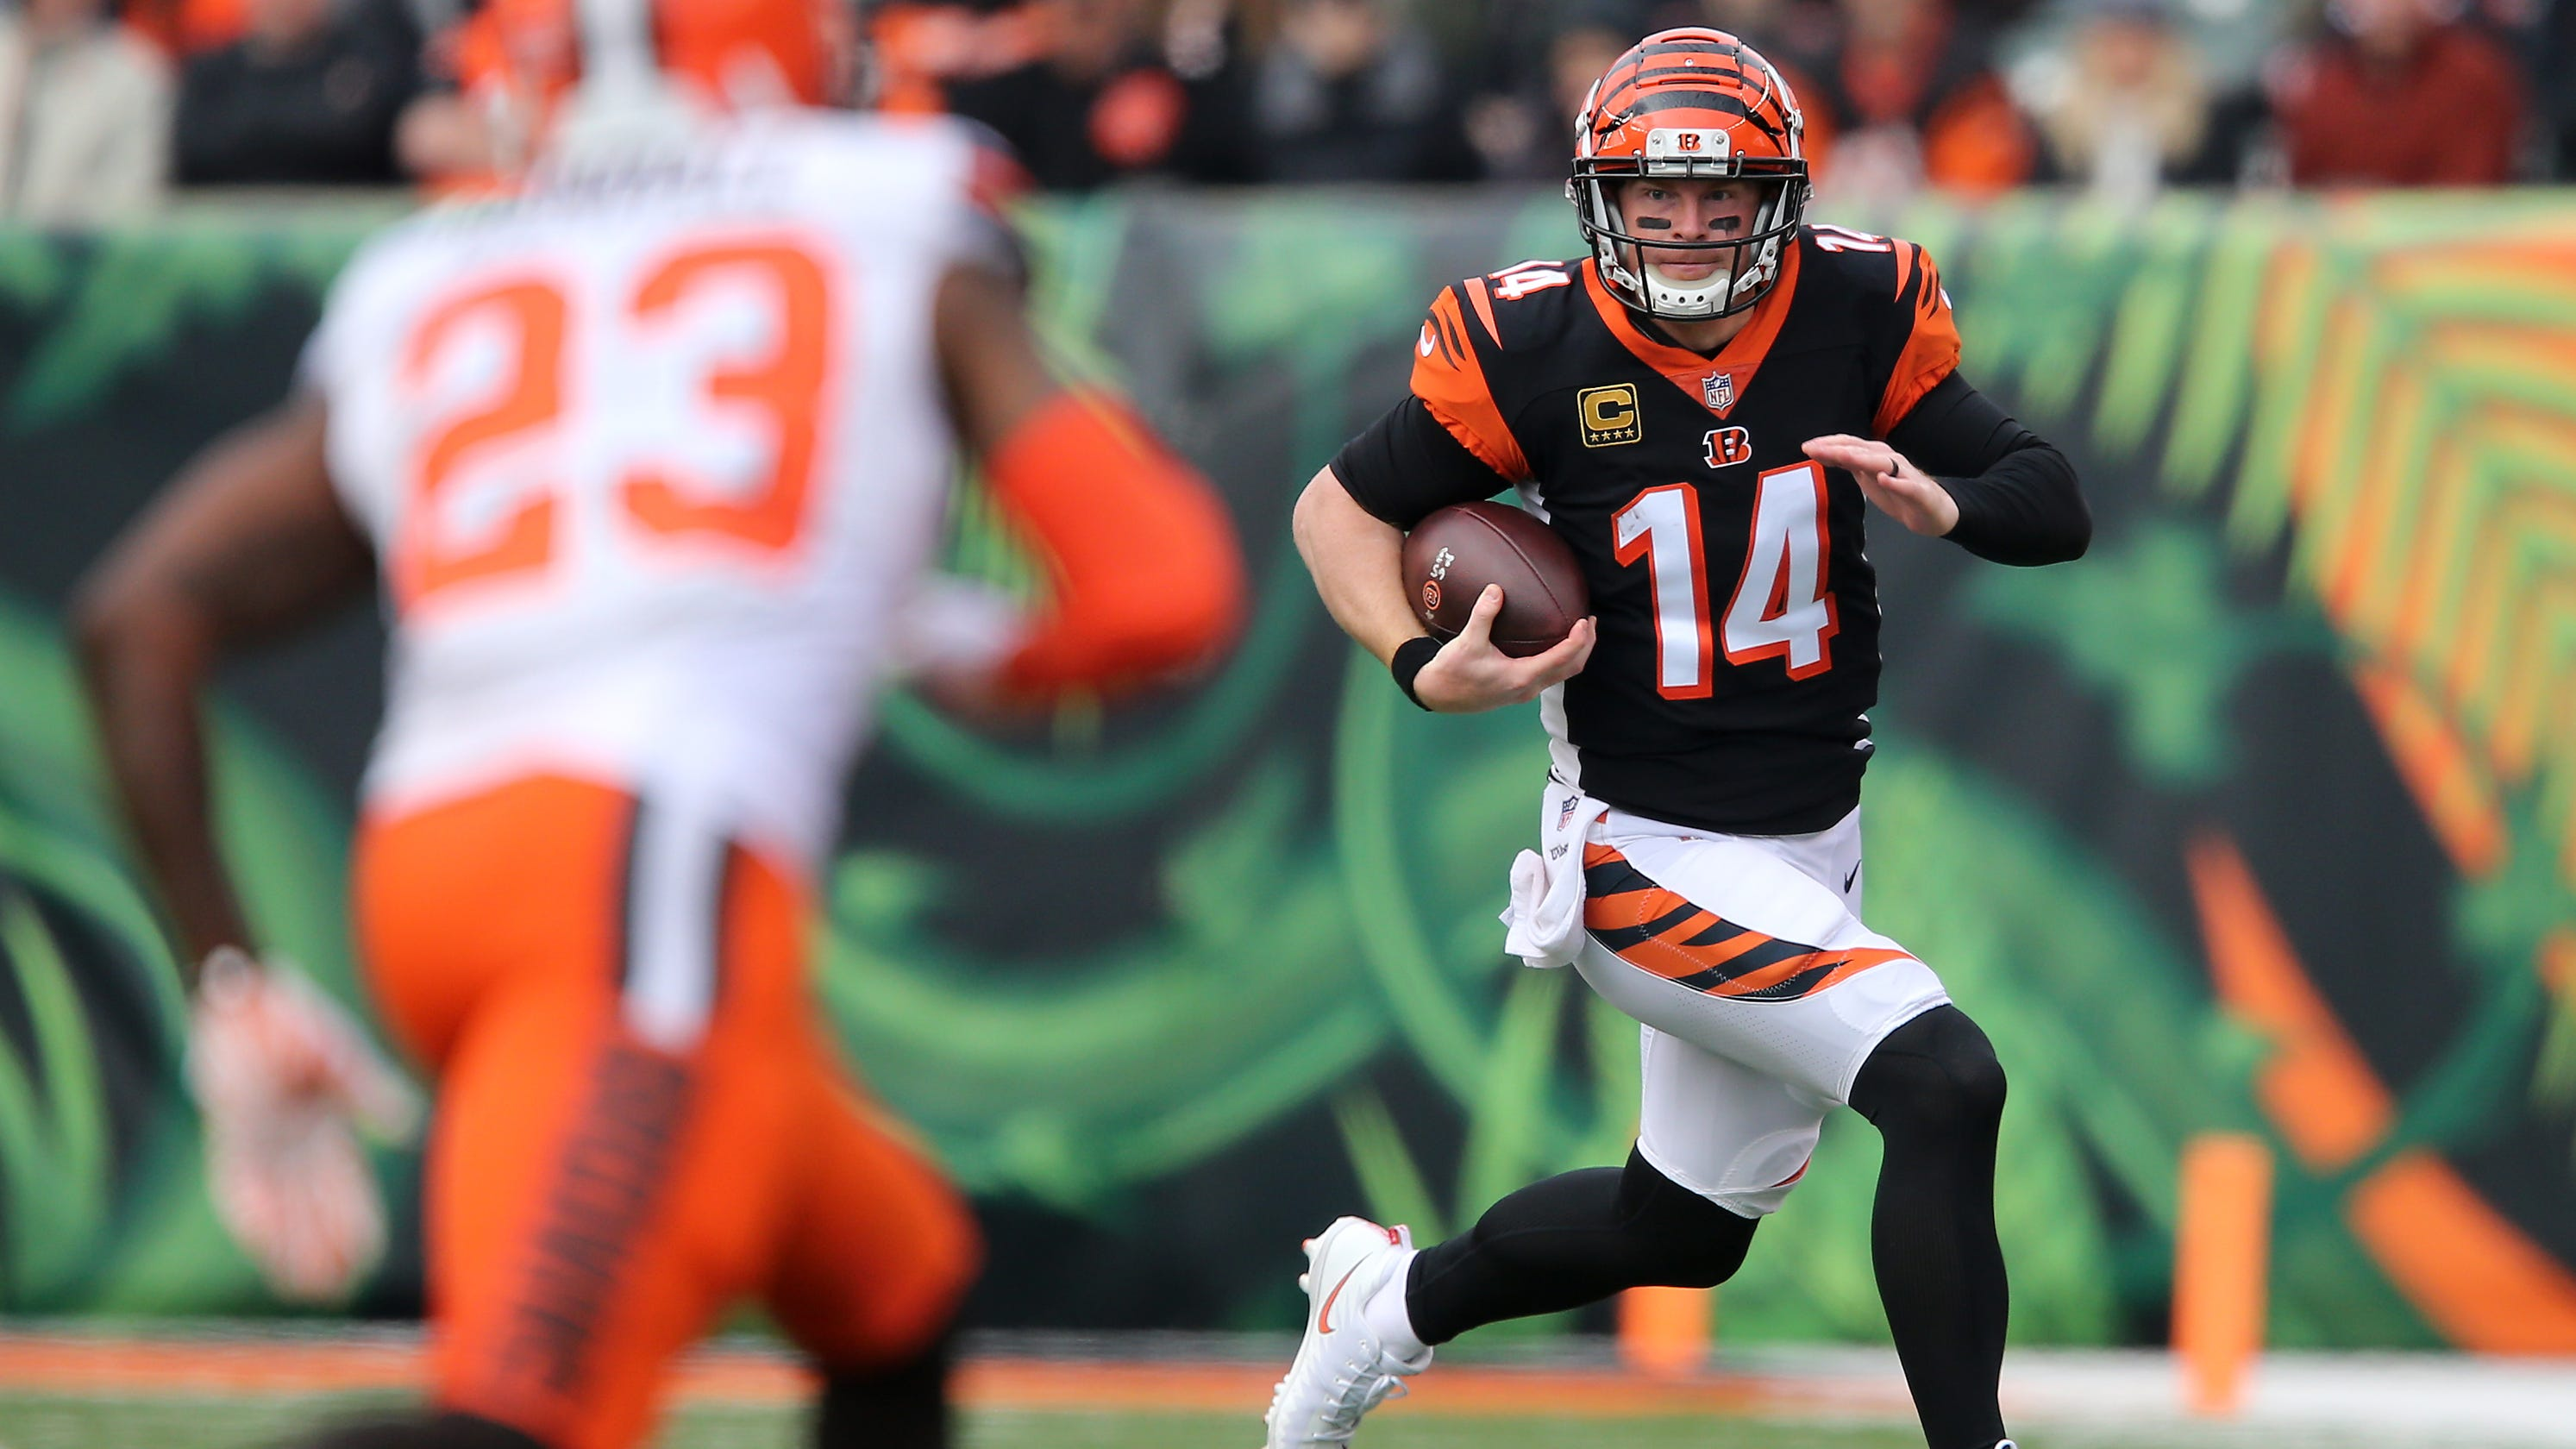 e4e899fa NFL.com's Schein: Andy Dalton will have 'best season of his career'